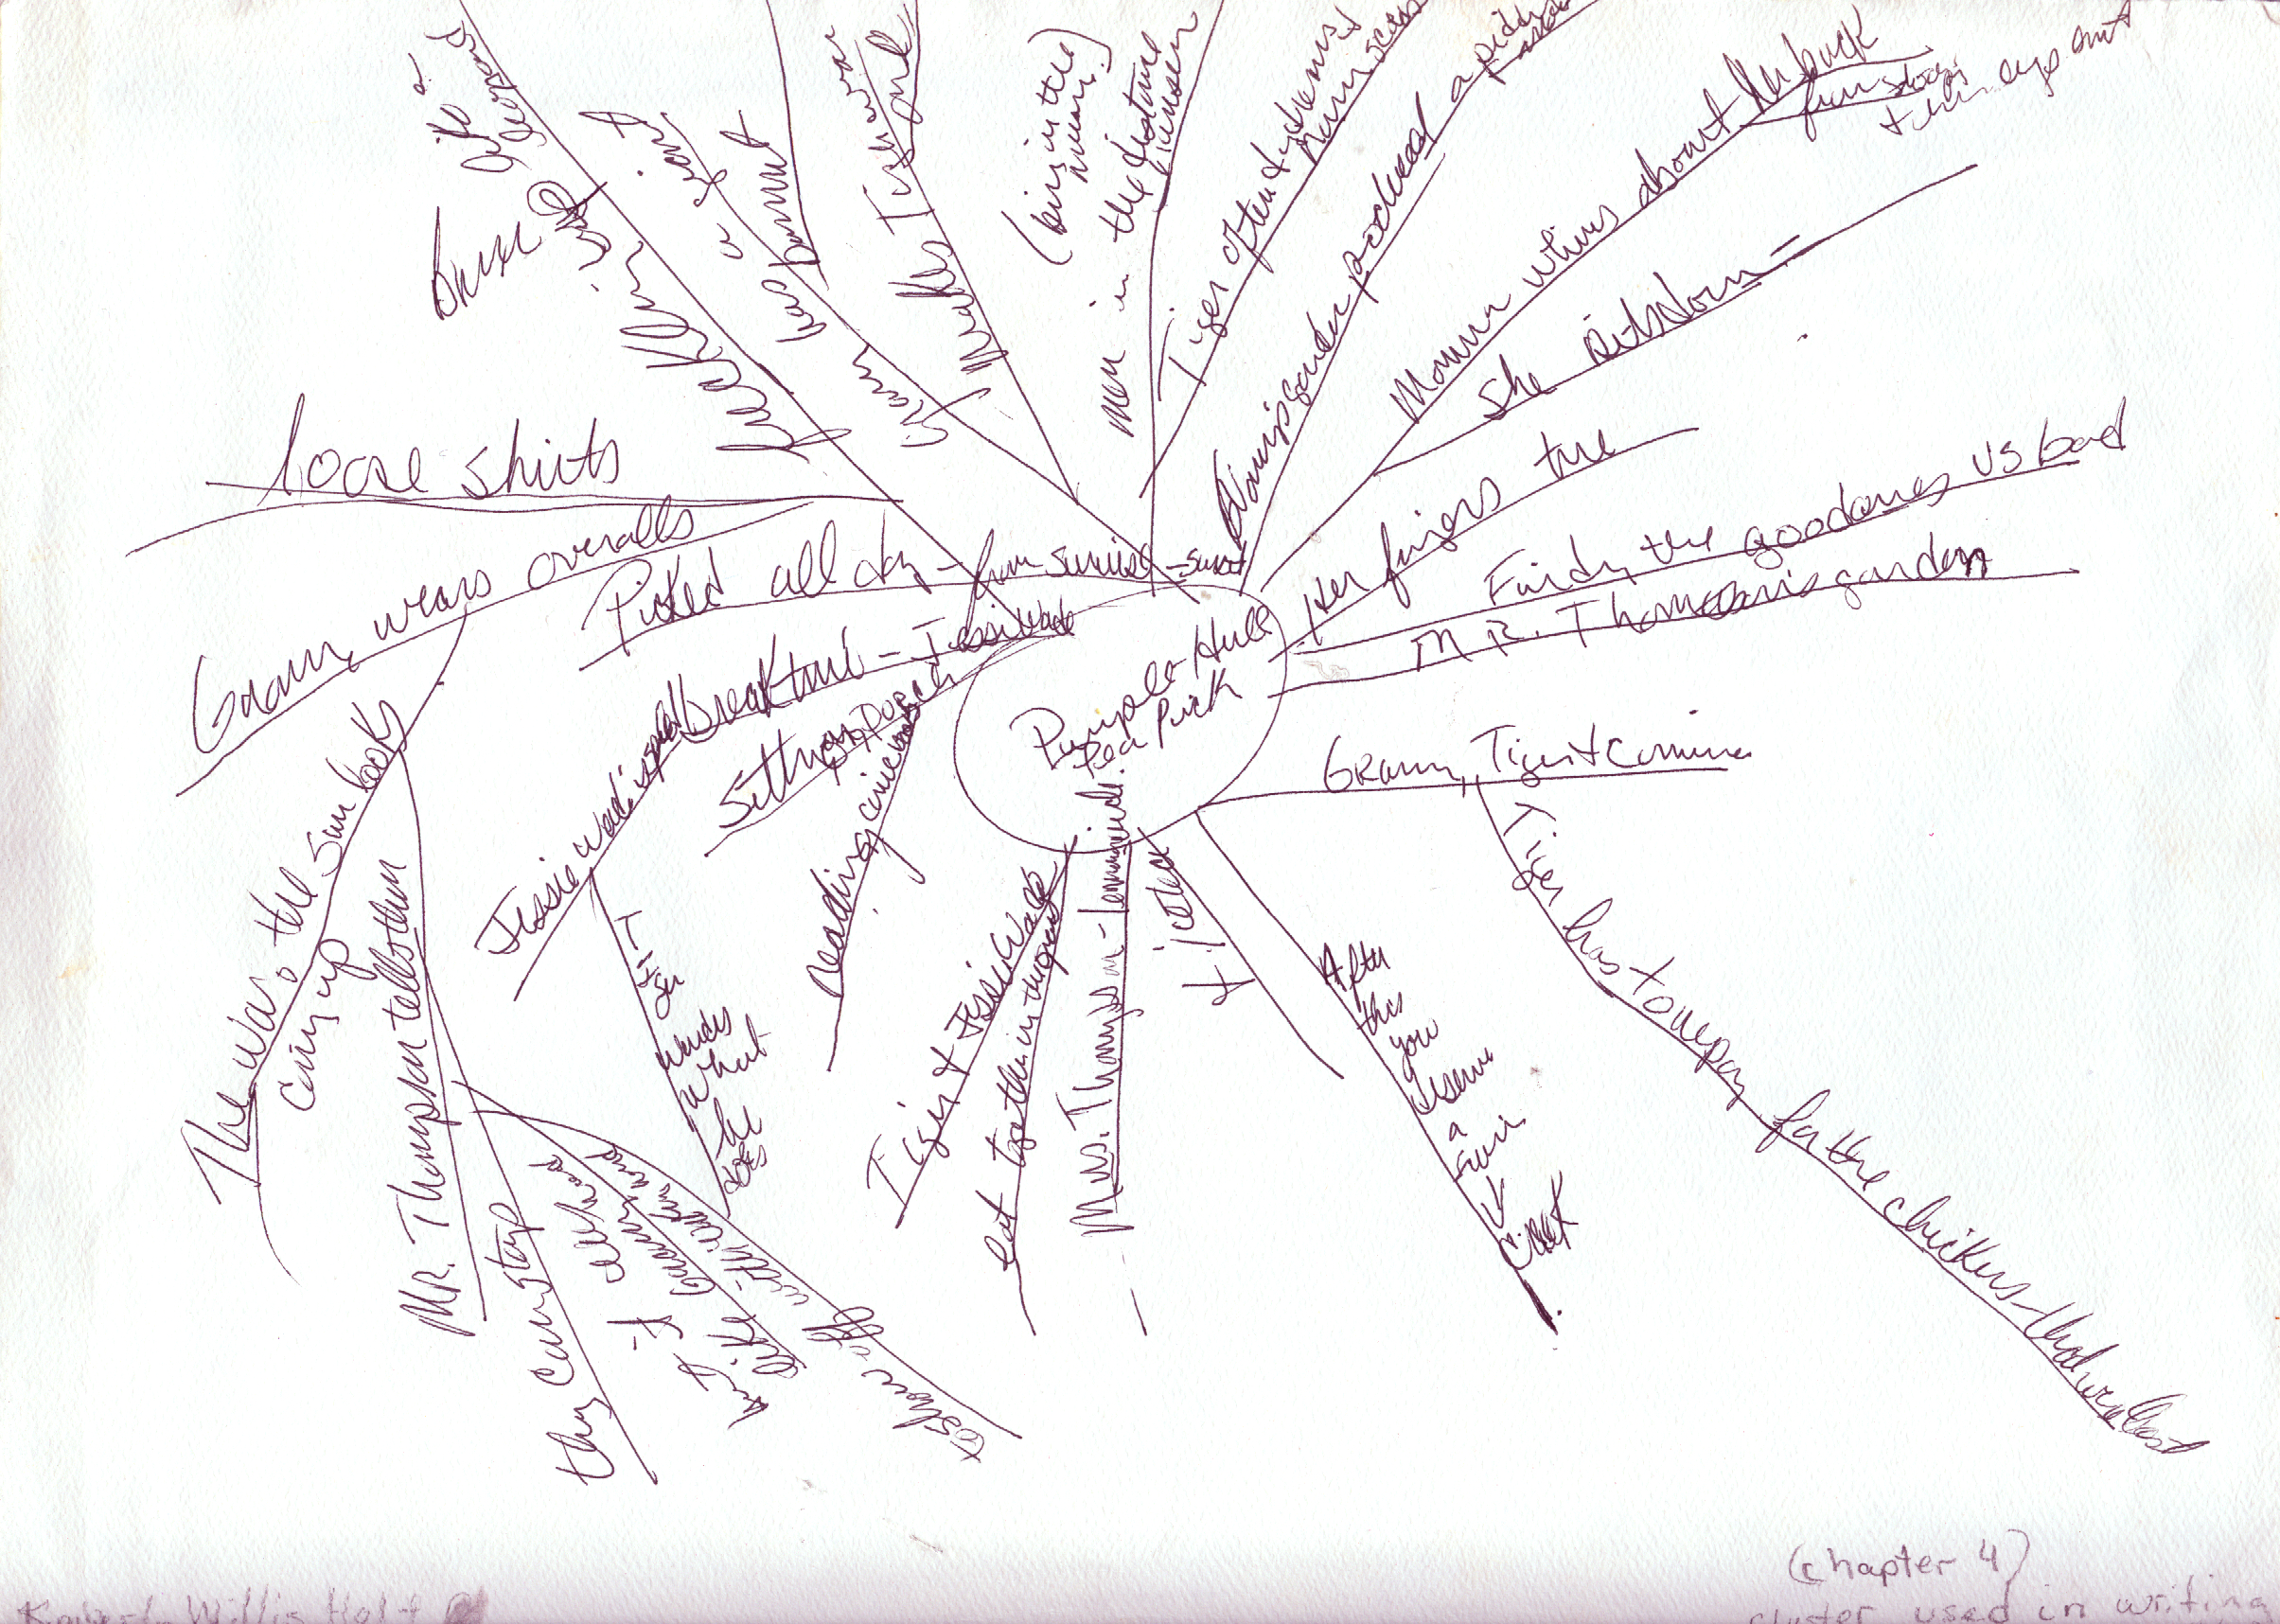 Web used to rewrite a scene in Chapter 4 of My Louisiana Sky